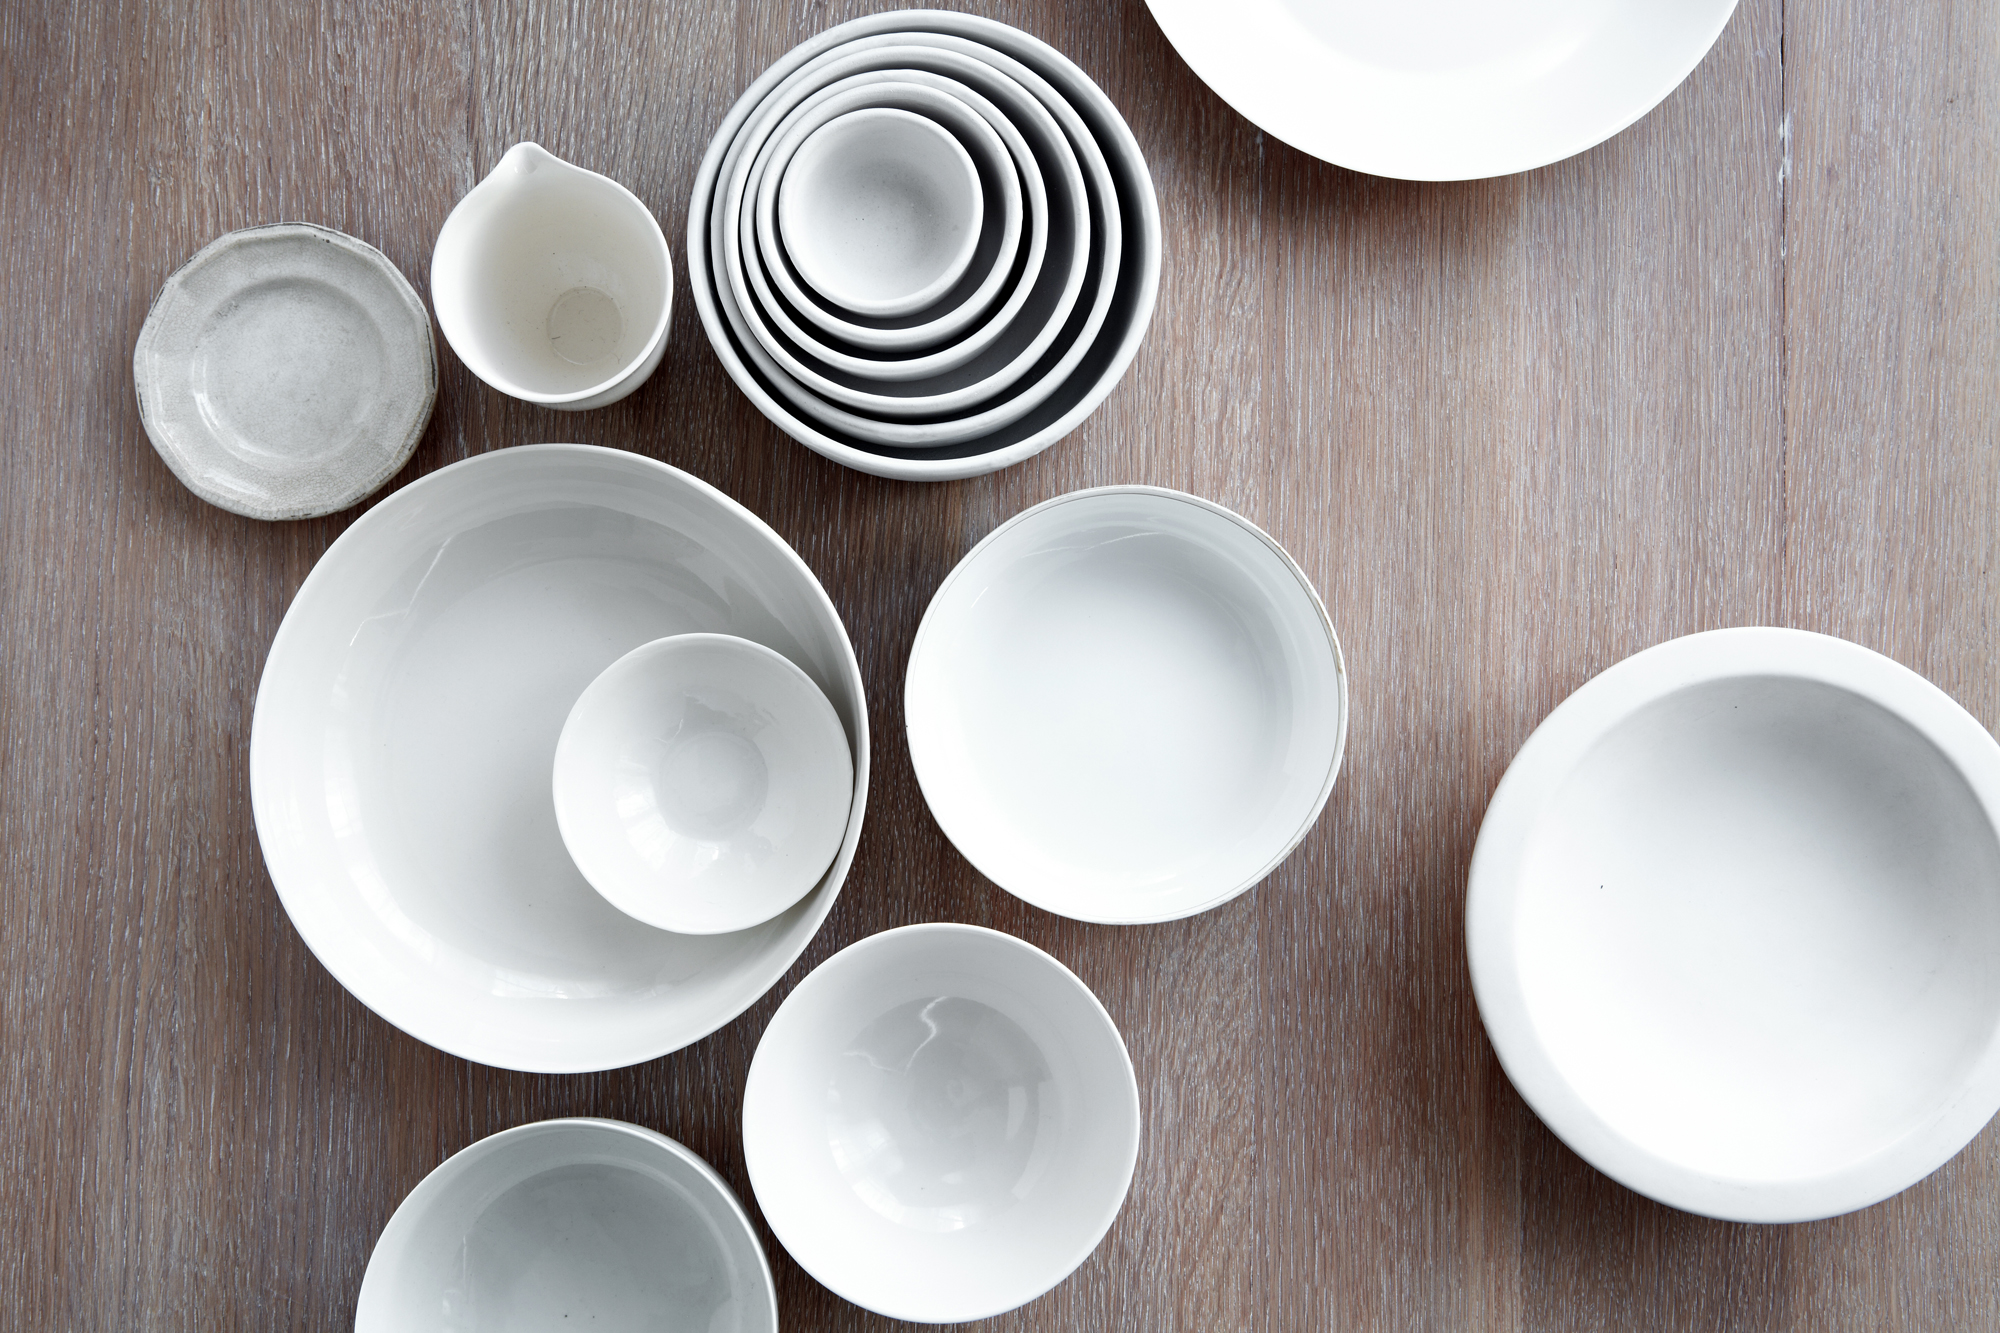 White ceramic dishware